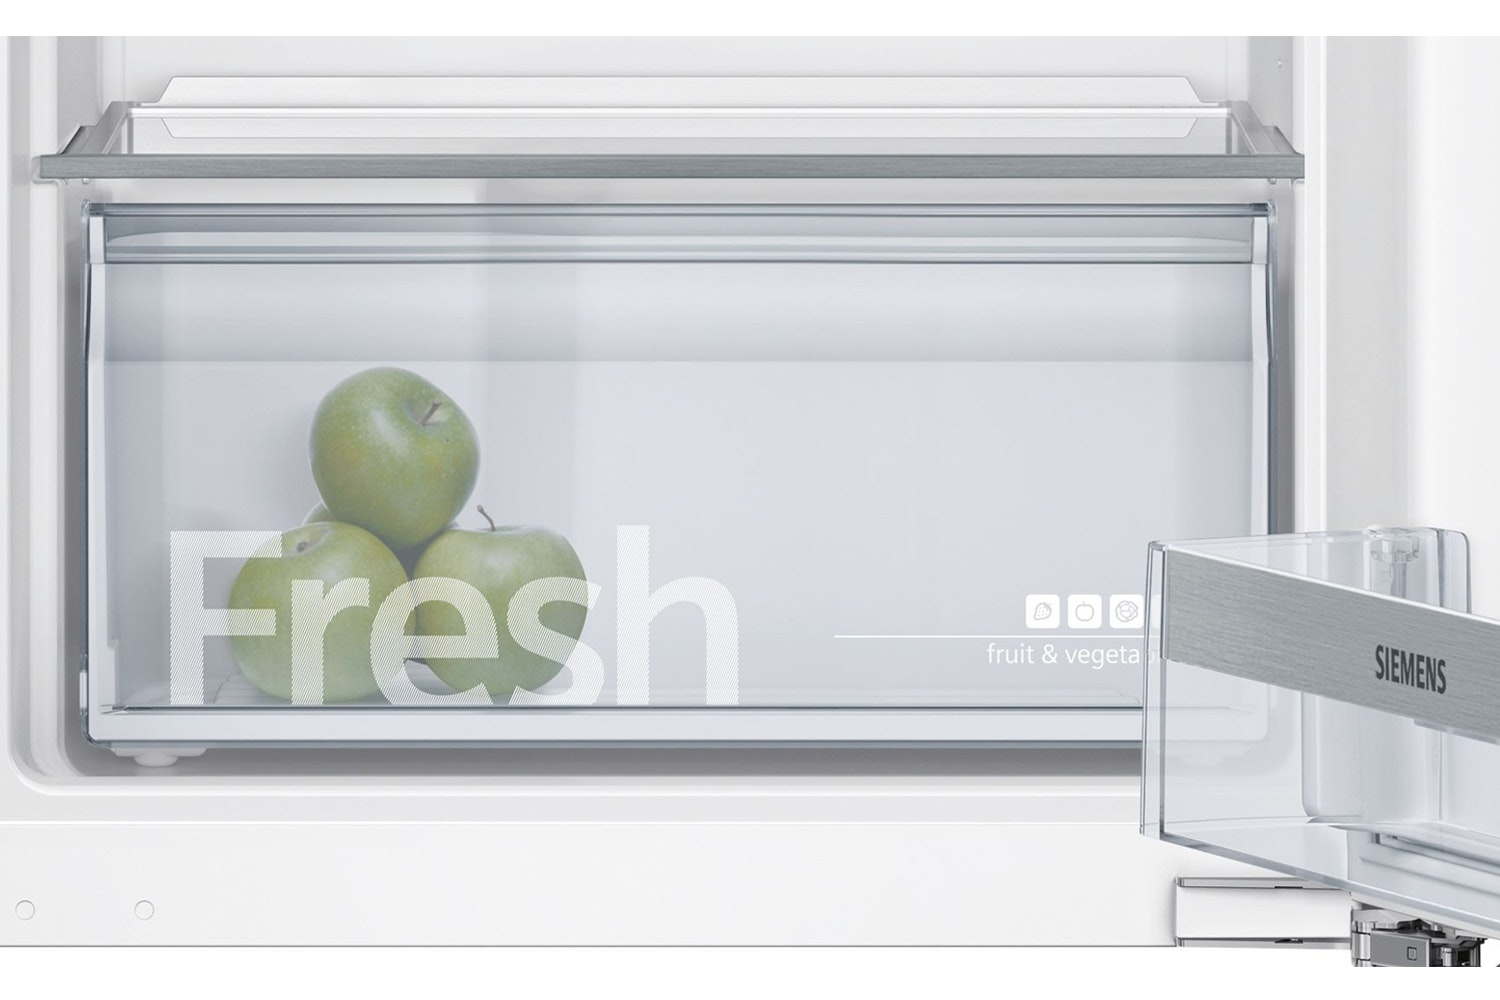 Siemens Integrated Upright Fridge Freezer | KI22LVF30G